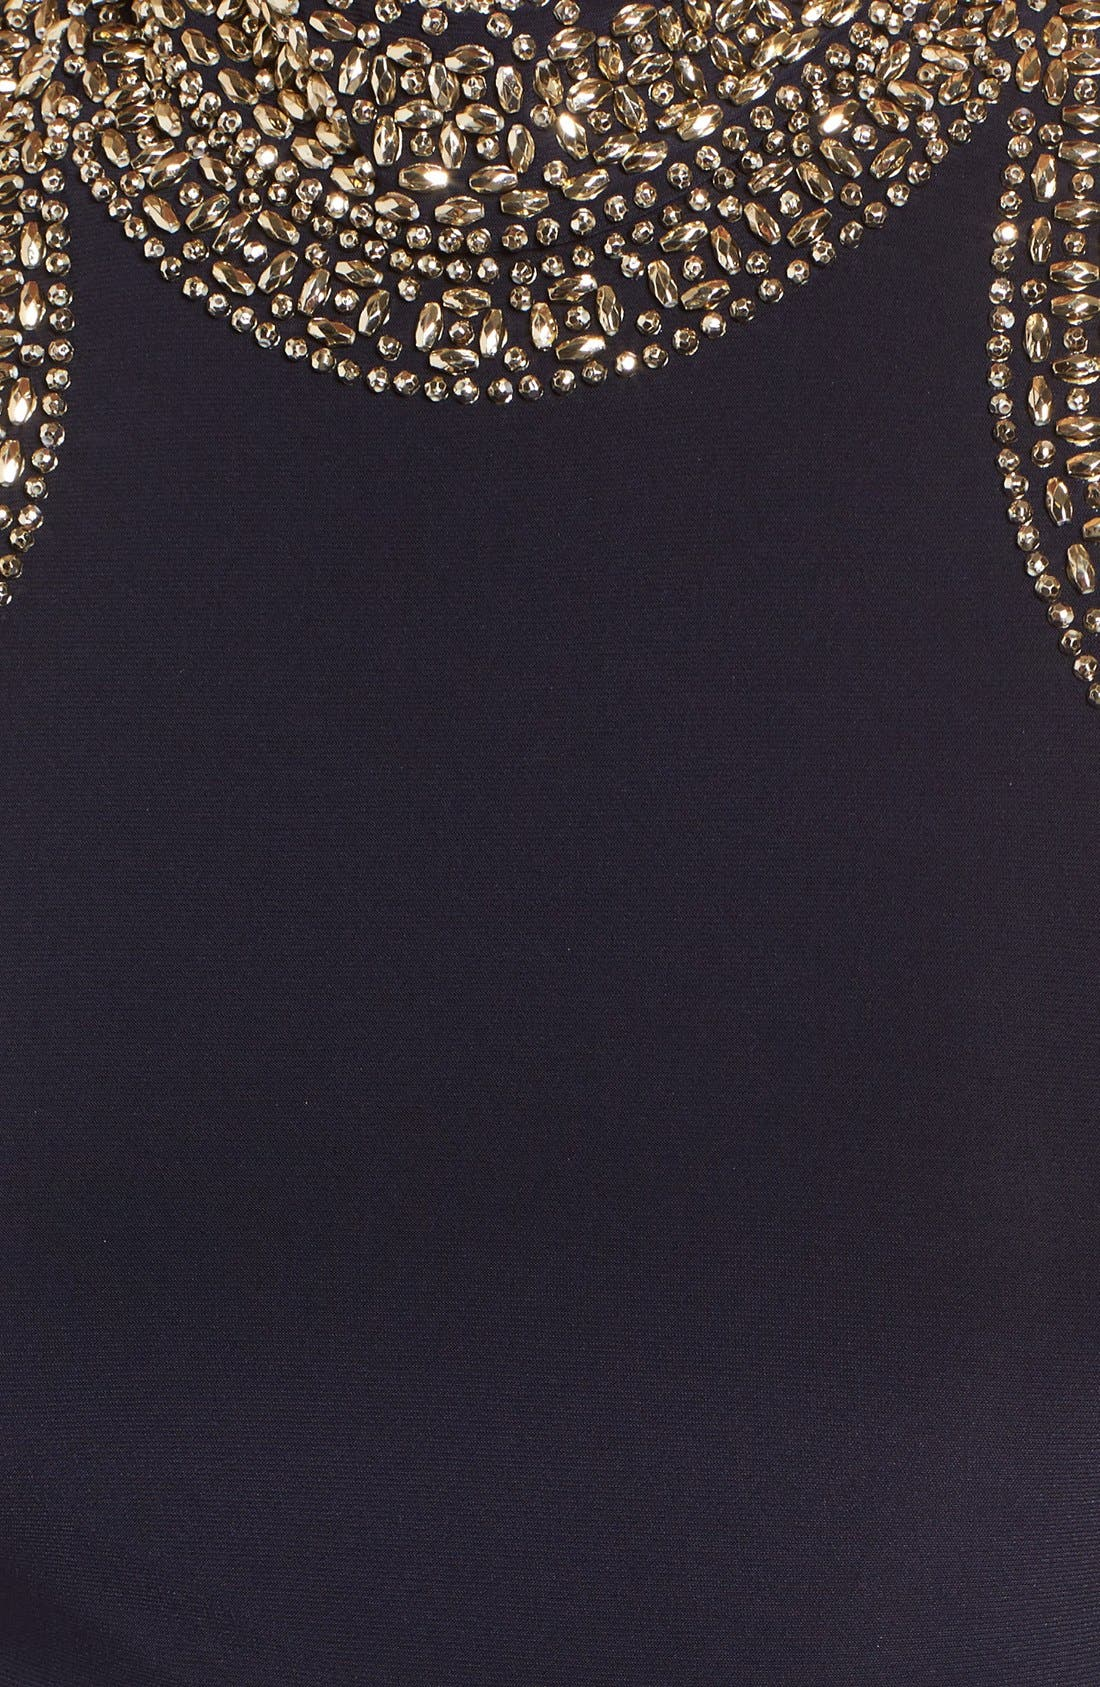 Embellished Gown,                             Alternate thumbnail 5, color,                             Navy/ Gold